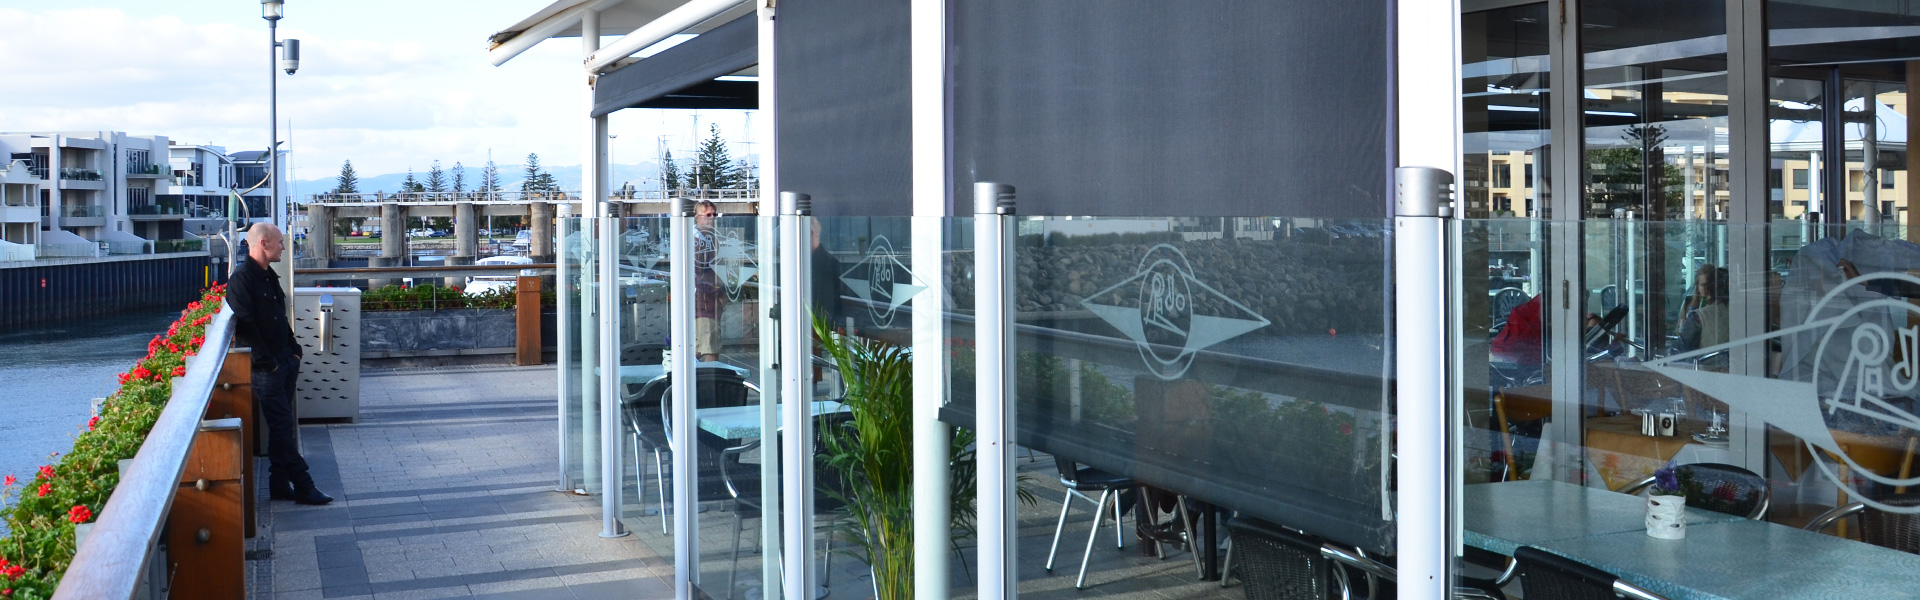 Commercial Blinds | Commercial Outdoor Blinds Adelaide